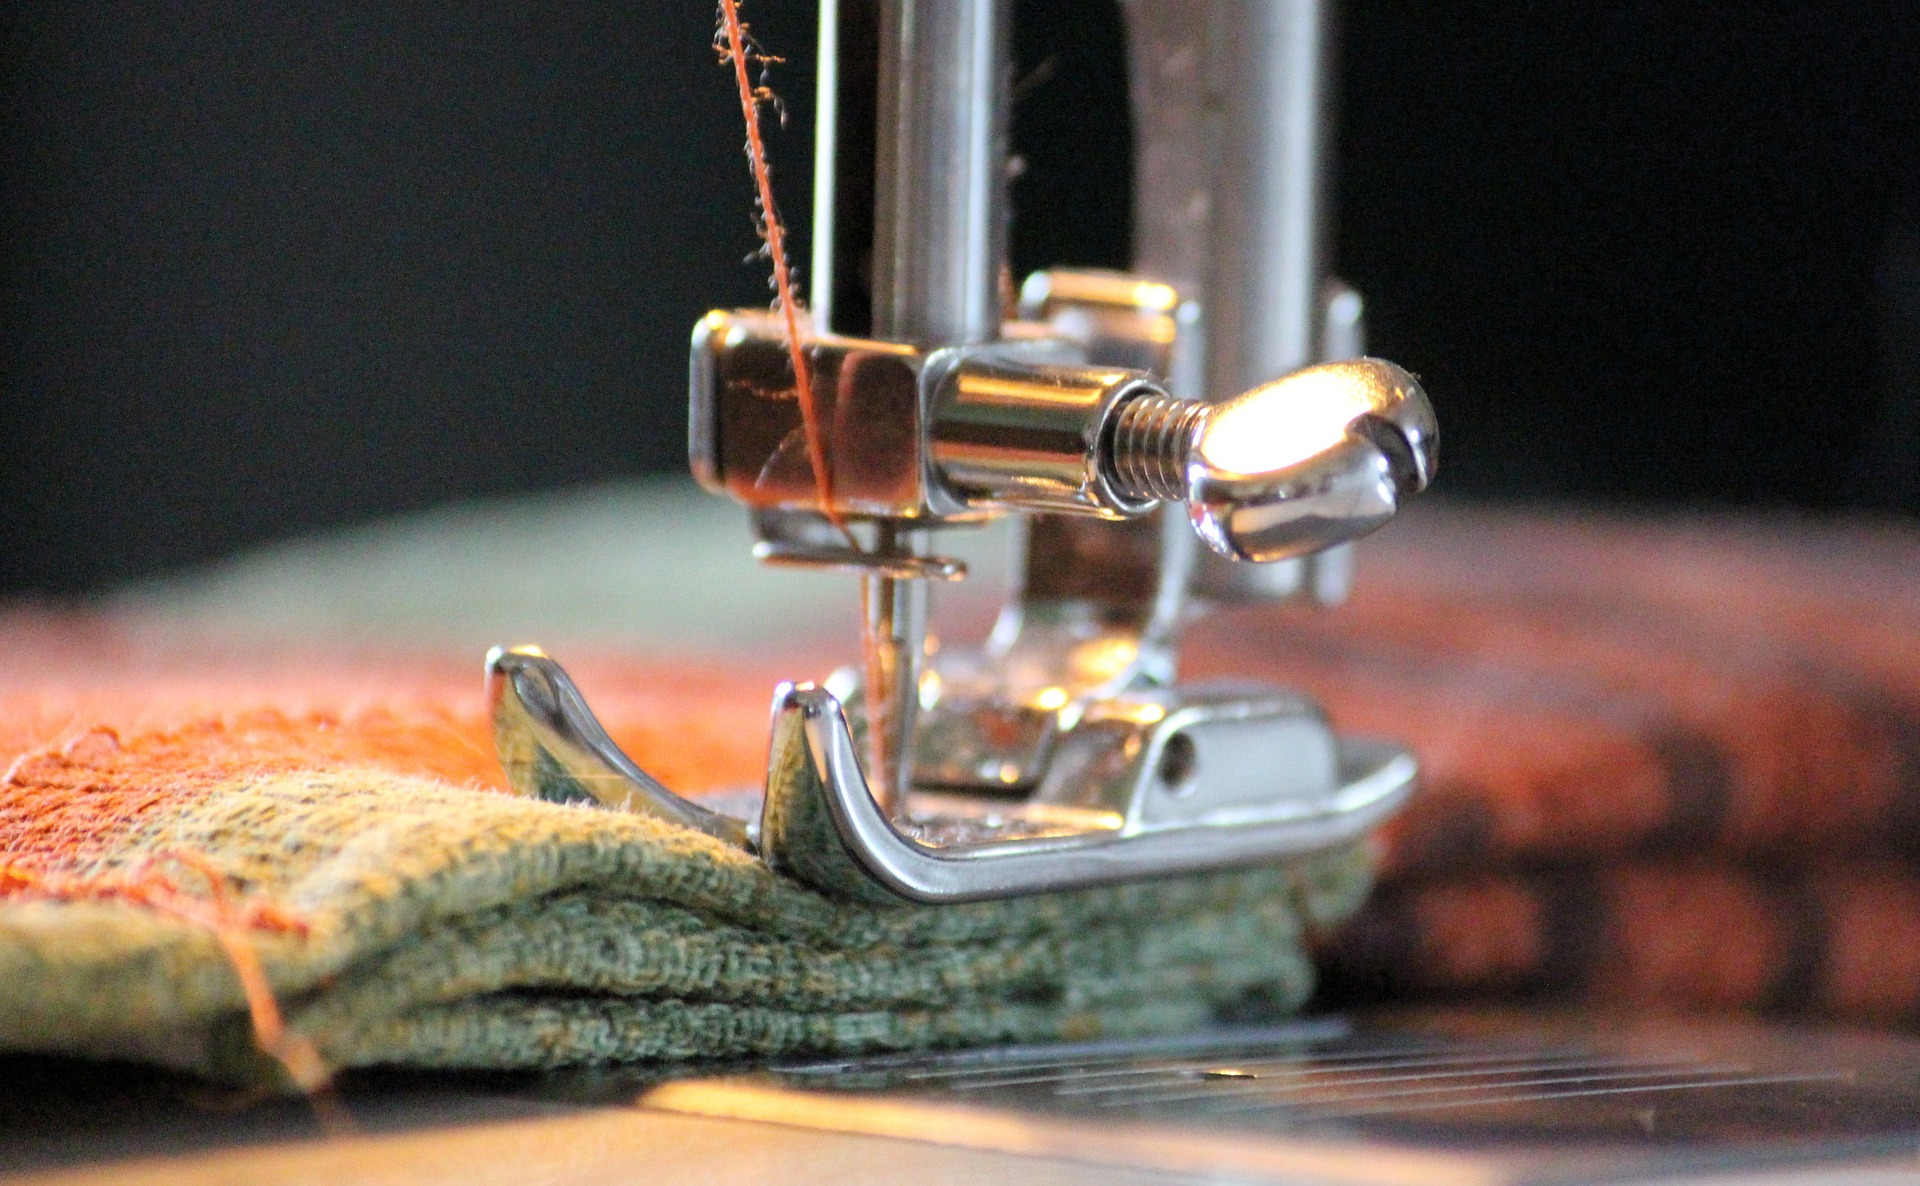 Closeup photo of a sewing machine pressure foor, sewing green and orange fabric, needle threaded with orange thread.